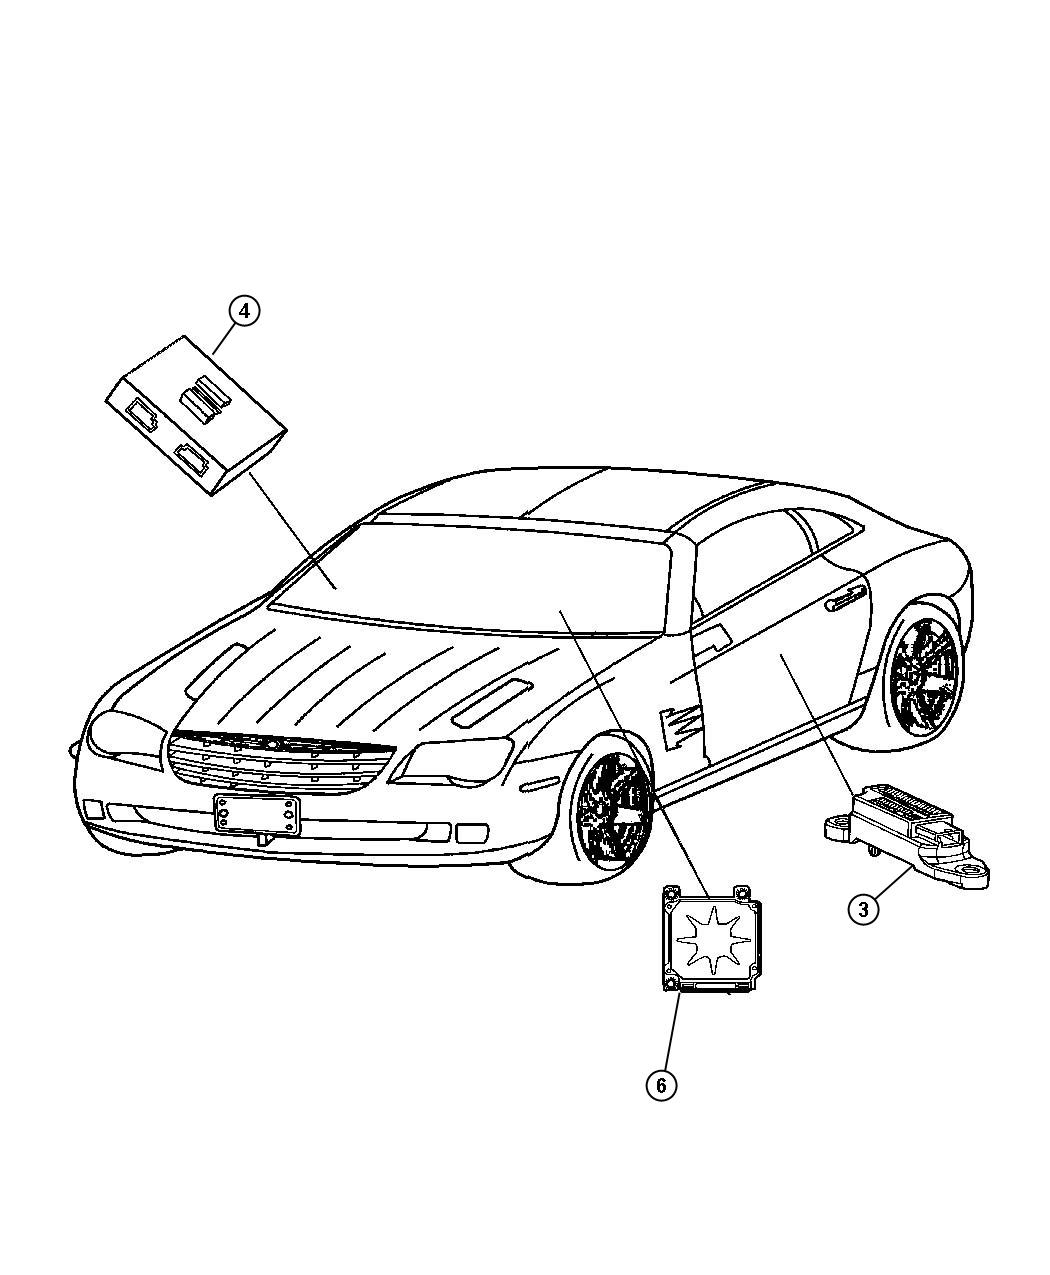 Chrysler Crossfire Sensor Air Bag Build To Export Mkt Specifications